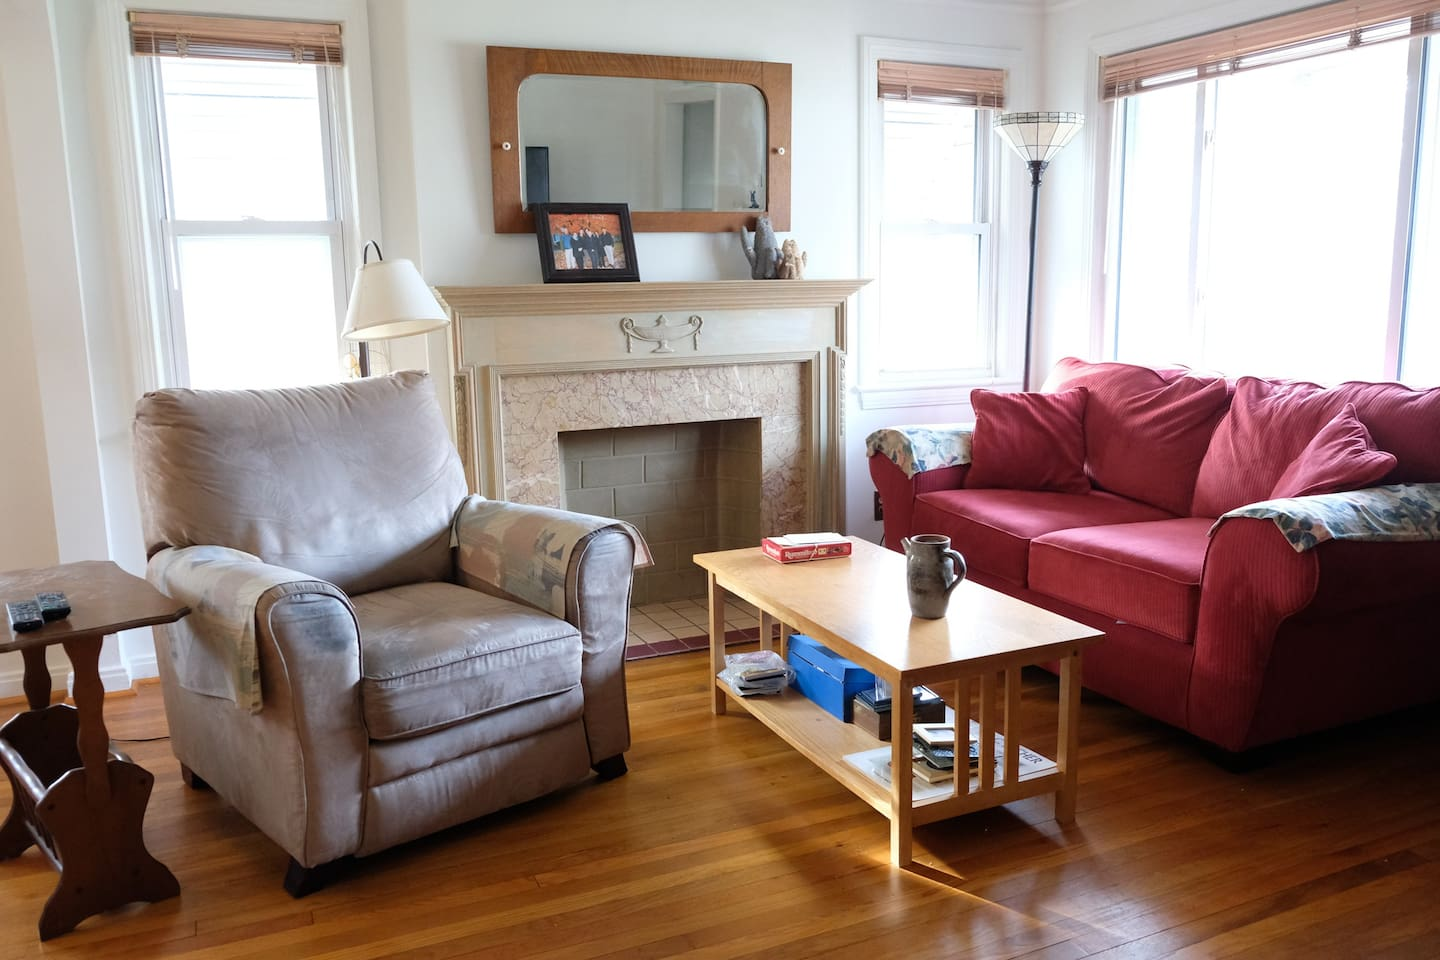 Sunny living room with internet ready TV and seating for at least 4. Also includes a dining room table that seats 4.